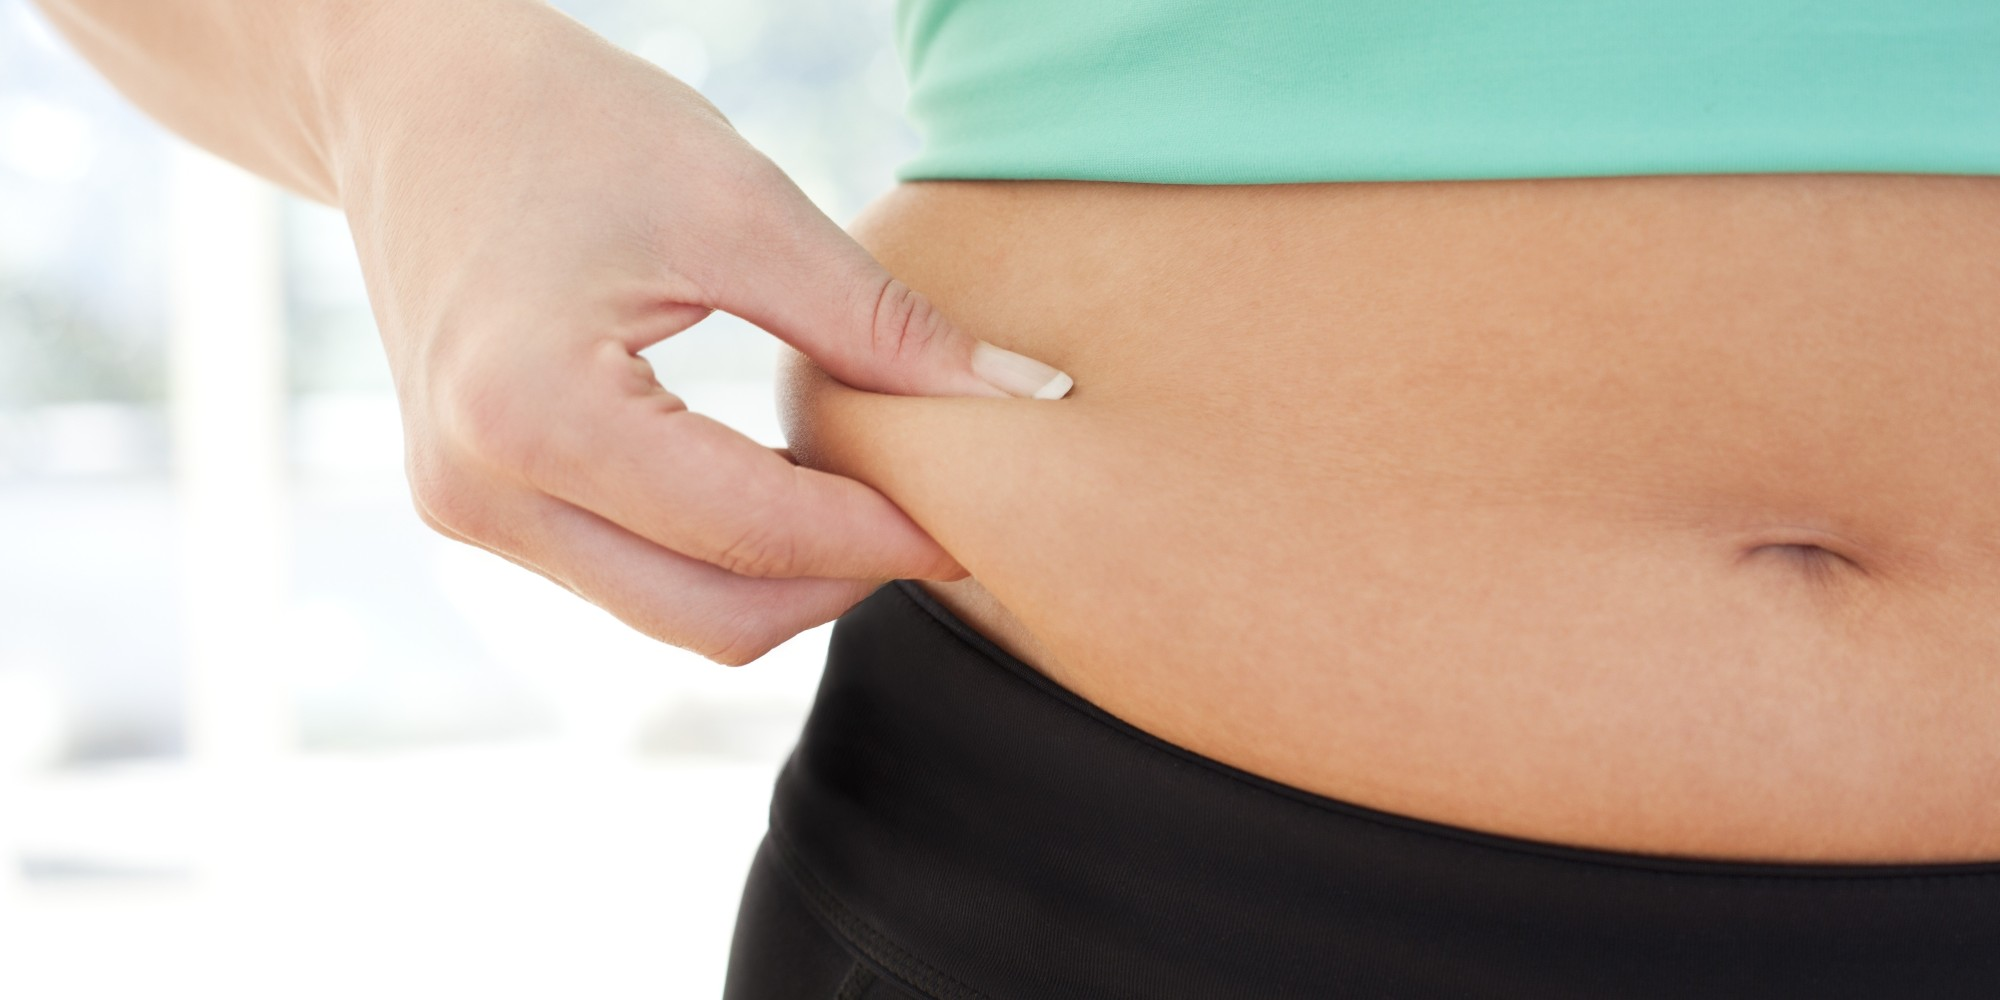 Forum on this topic: 10 Reasons Youre Not Losing Weight, 10-reasons-youre-not-losing-weight/